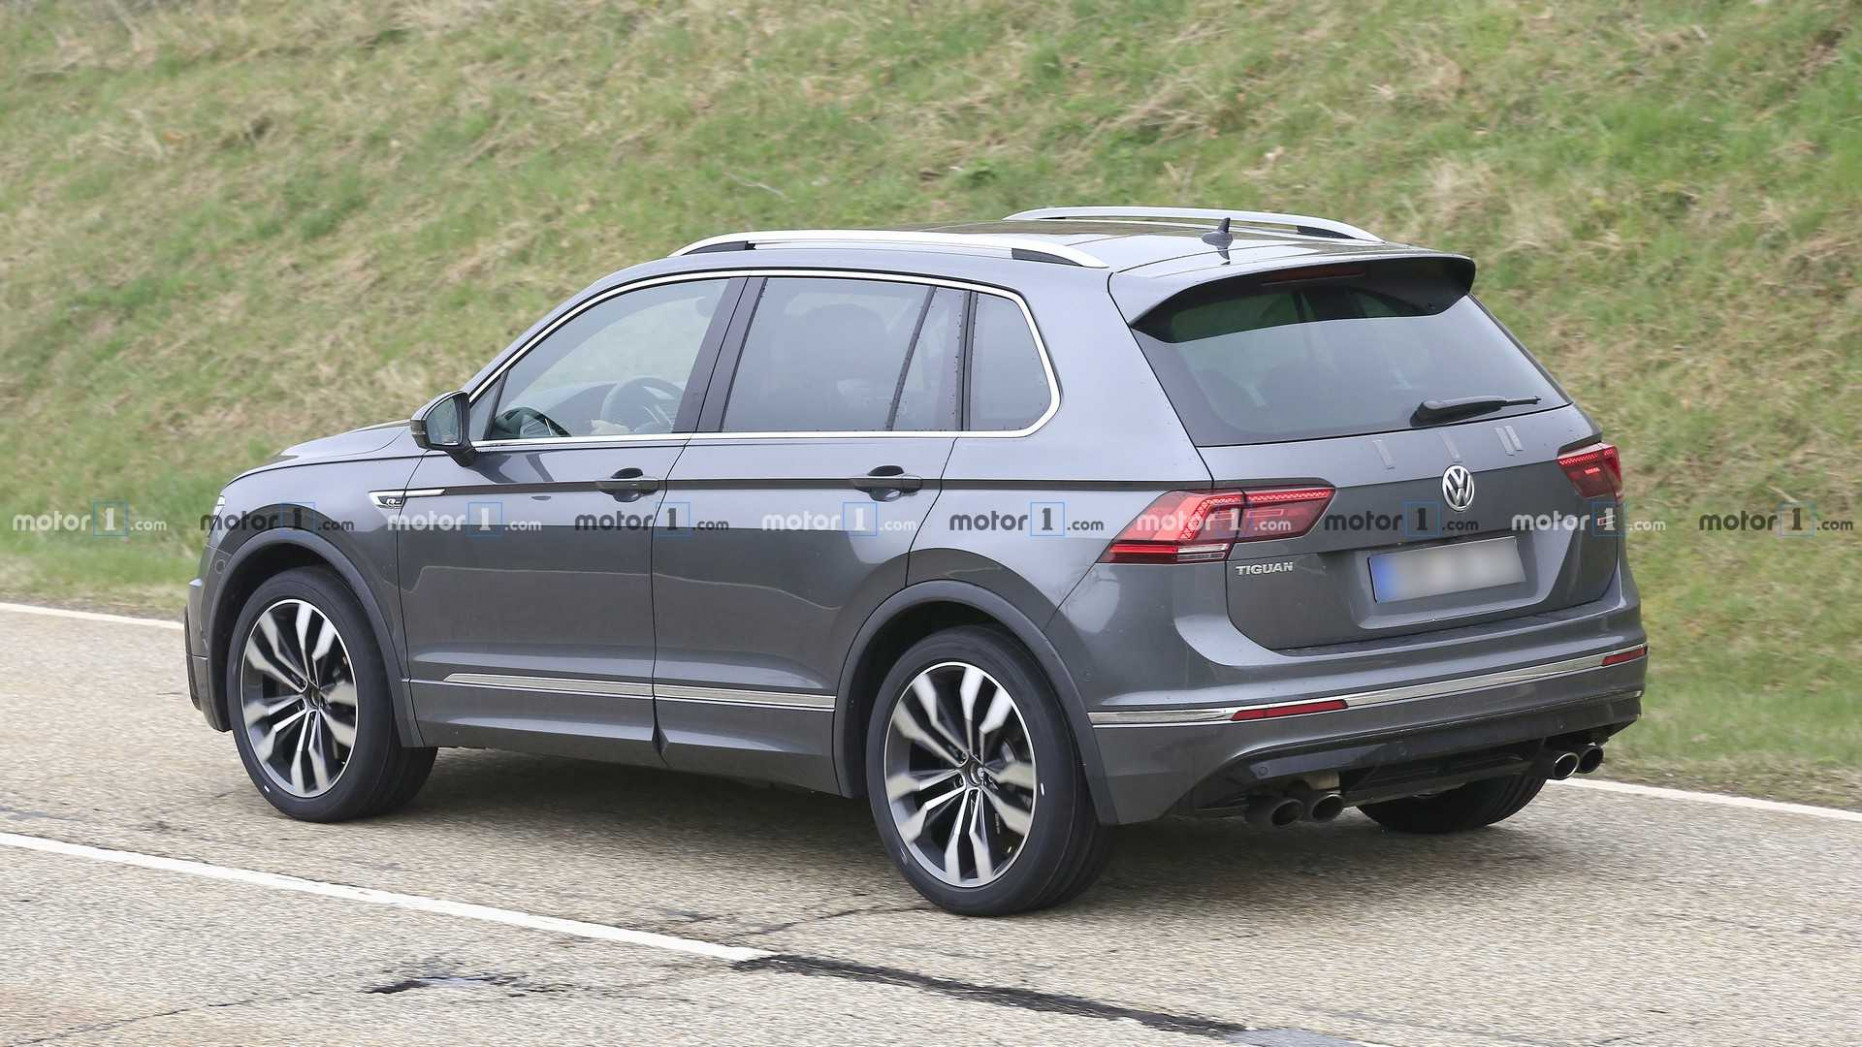 VW Tiguan Facelift and Tiguan R Concept Due In 8 | 2020 Volkswagen Tiguan Dimensions